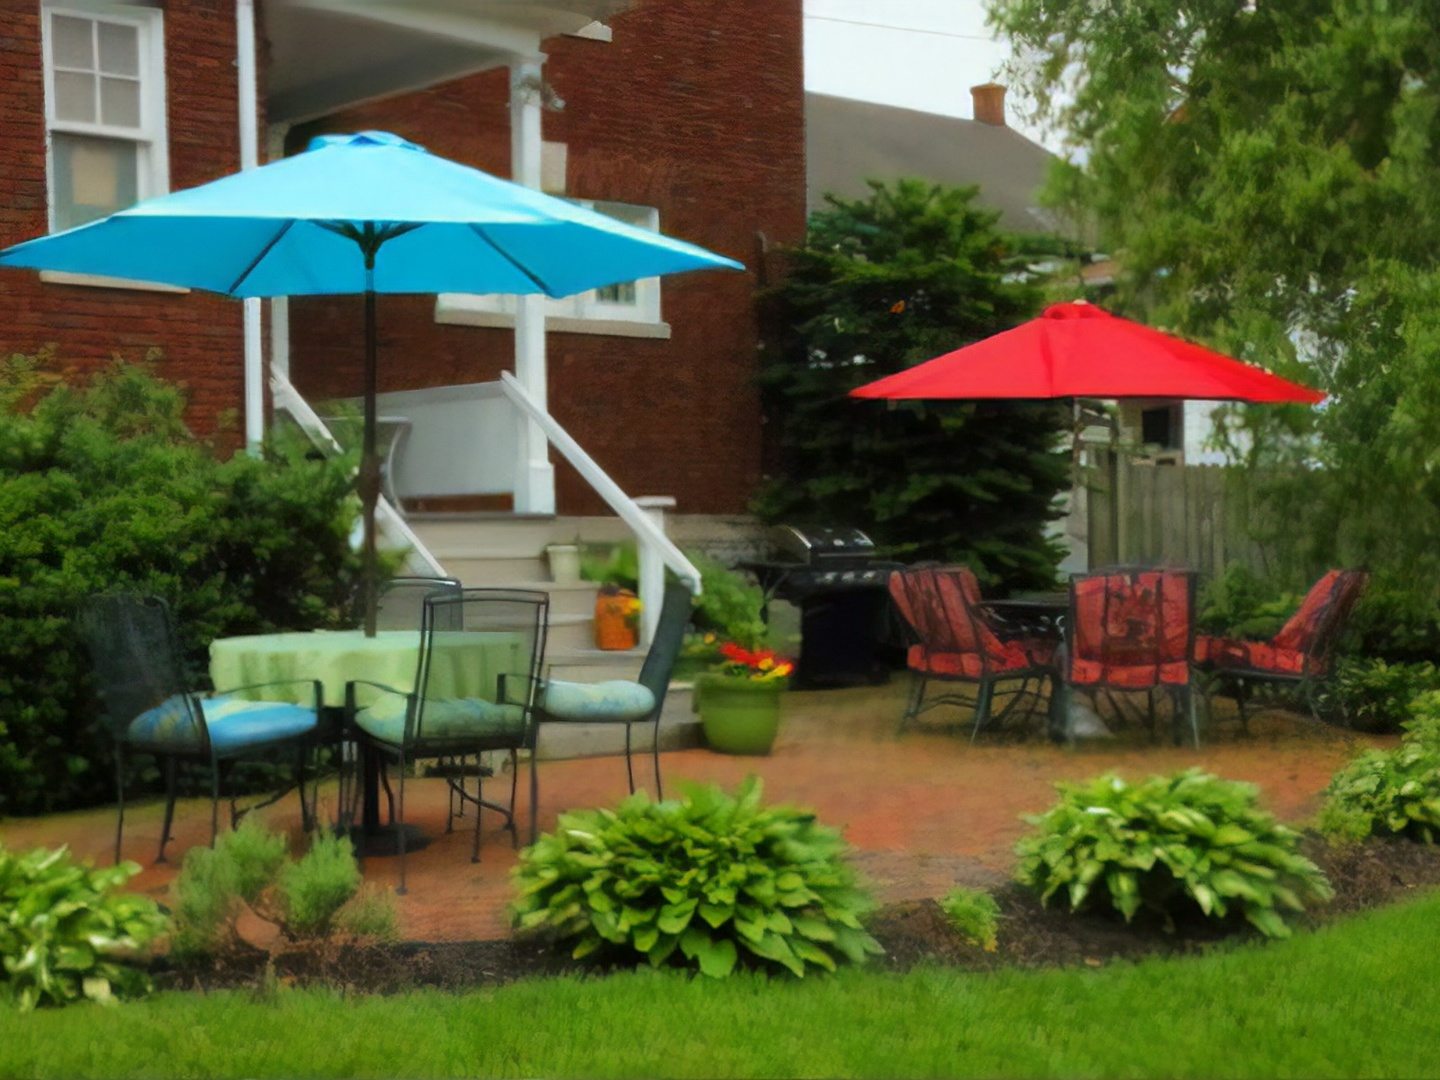 A group of lawn chairs sitting on top of a green umbrella at Olde Square Inn.